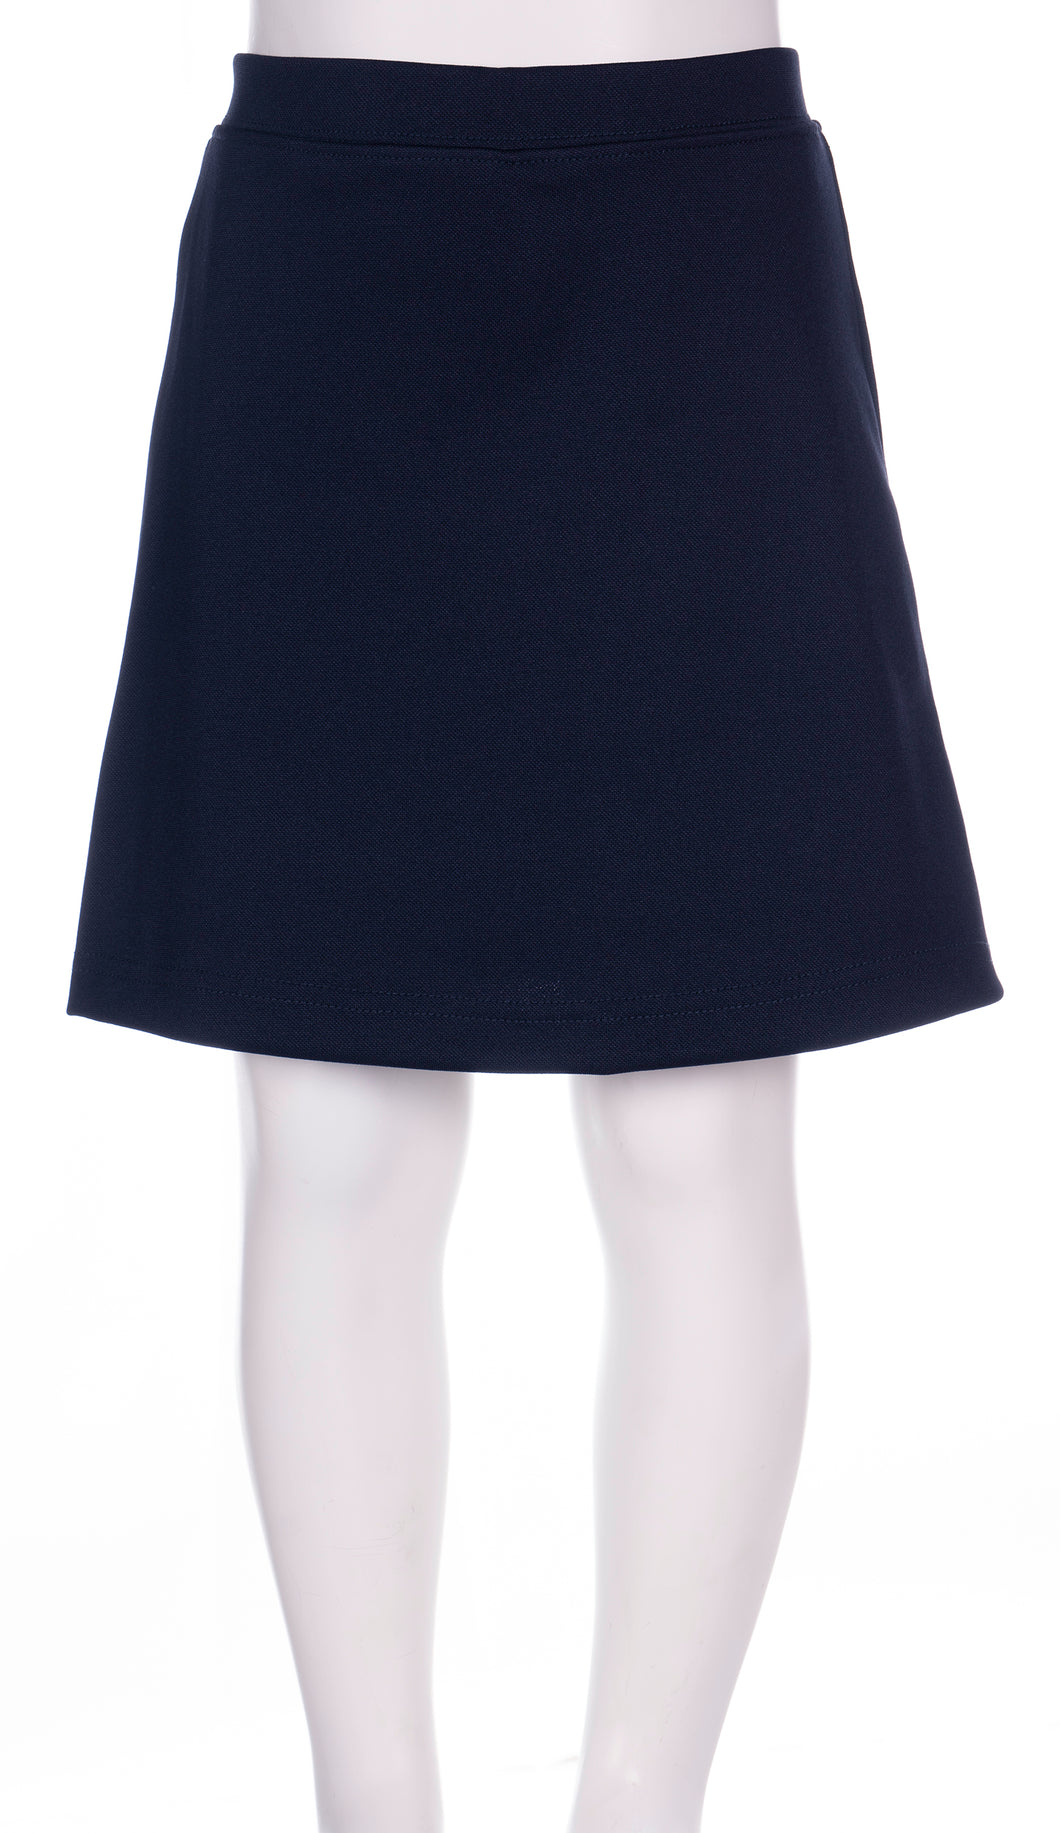 Henderson Primary School - Girls Skort Navy